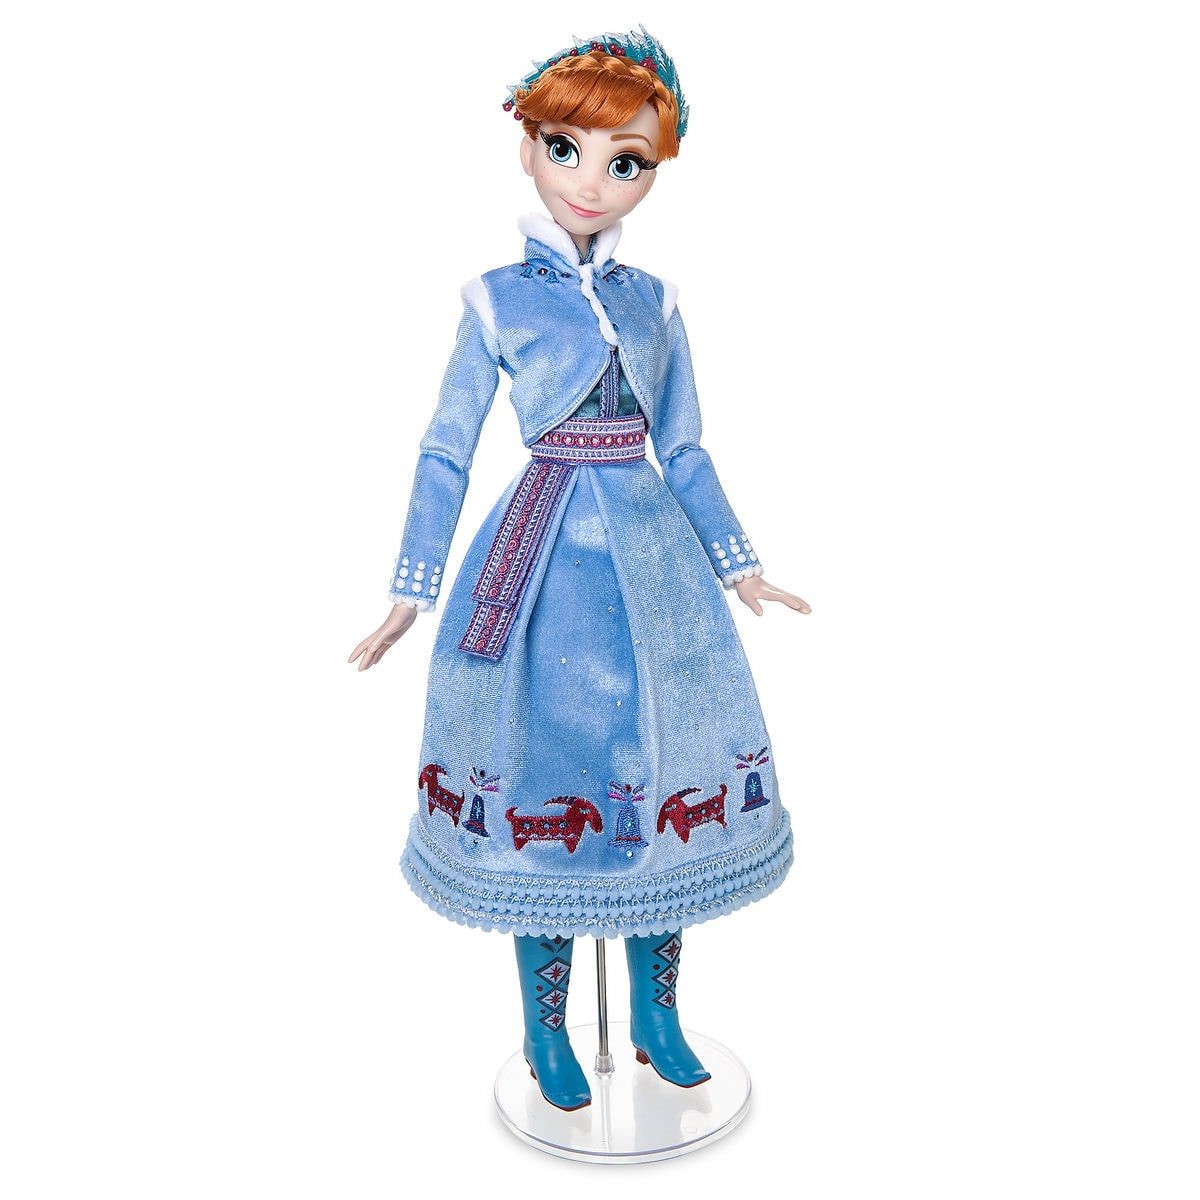 d1fe15966f Product Image of Anna Doll - Olaf s Frozen Adventure - Limited Edition   1